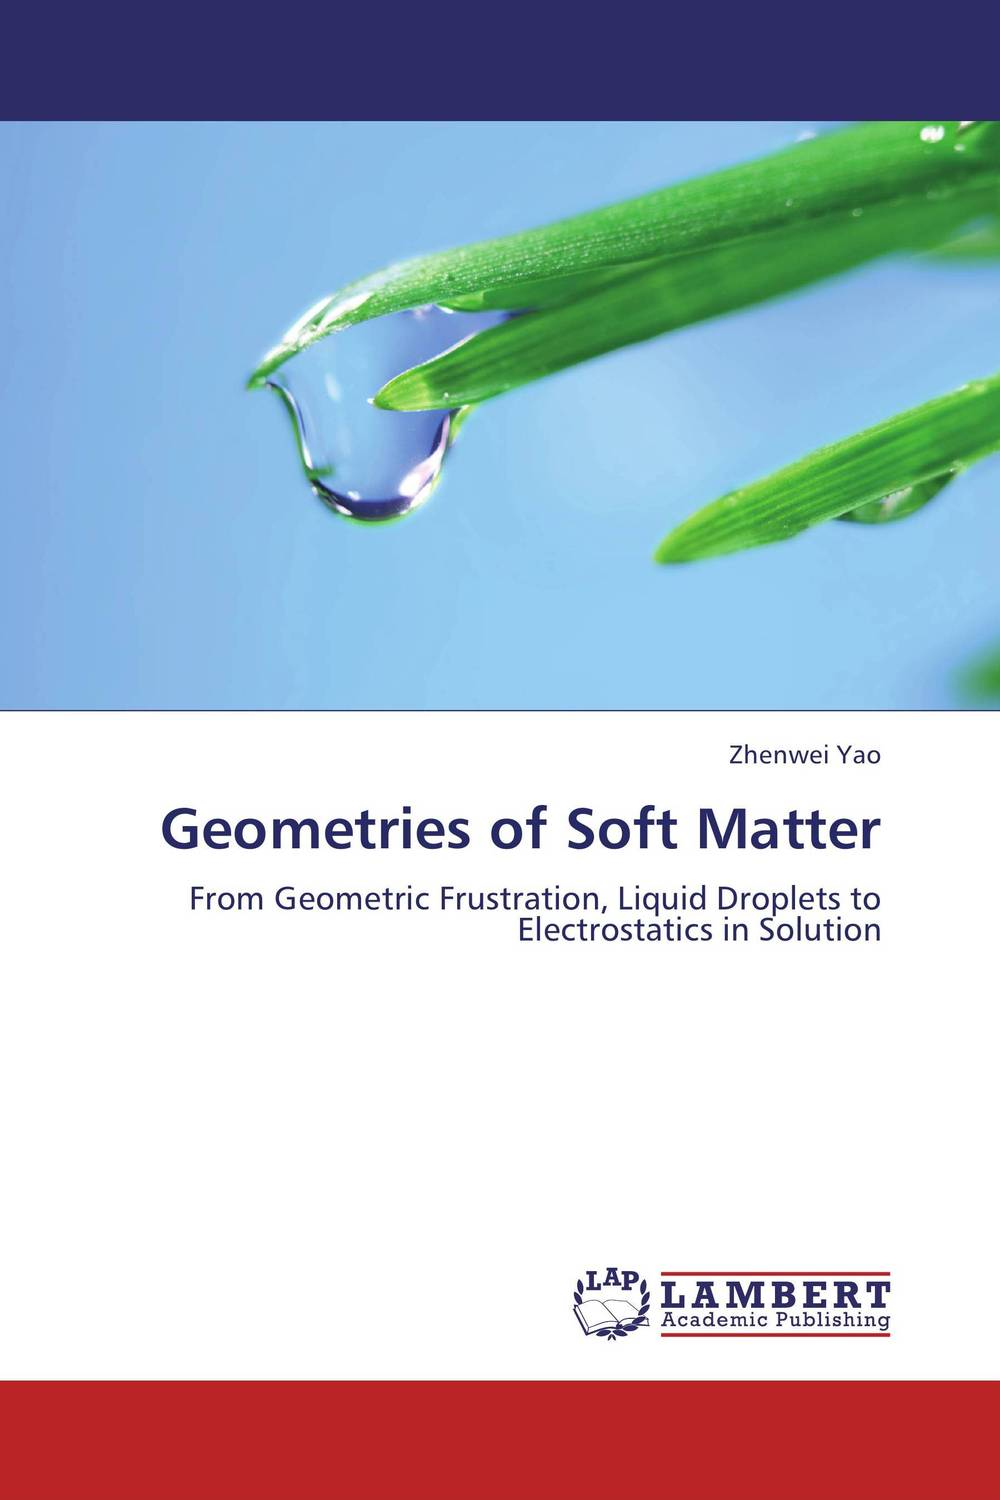 Geometries of Soft Matter driven to distraction